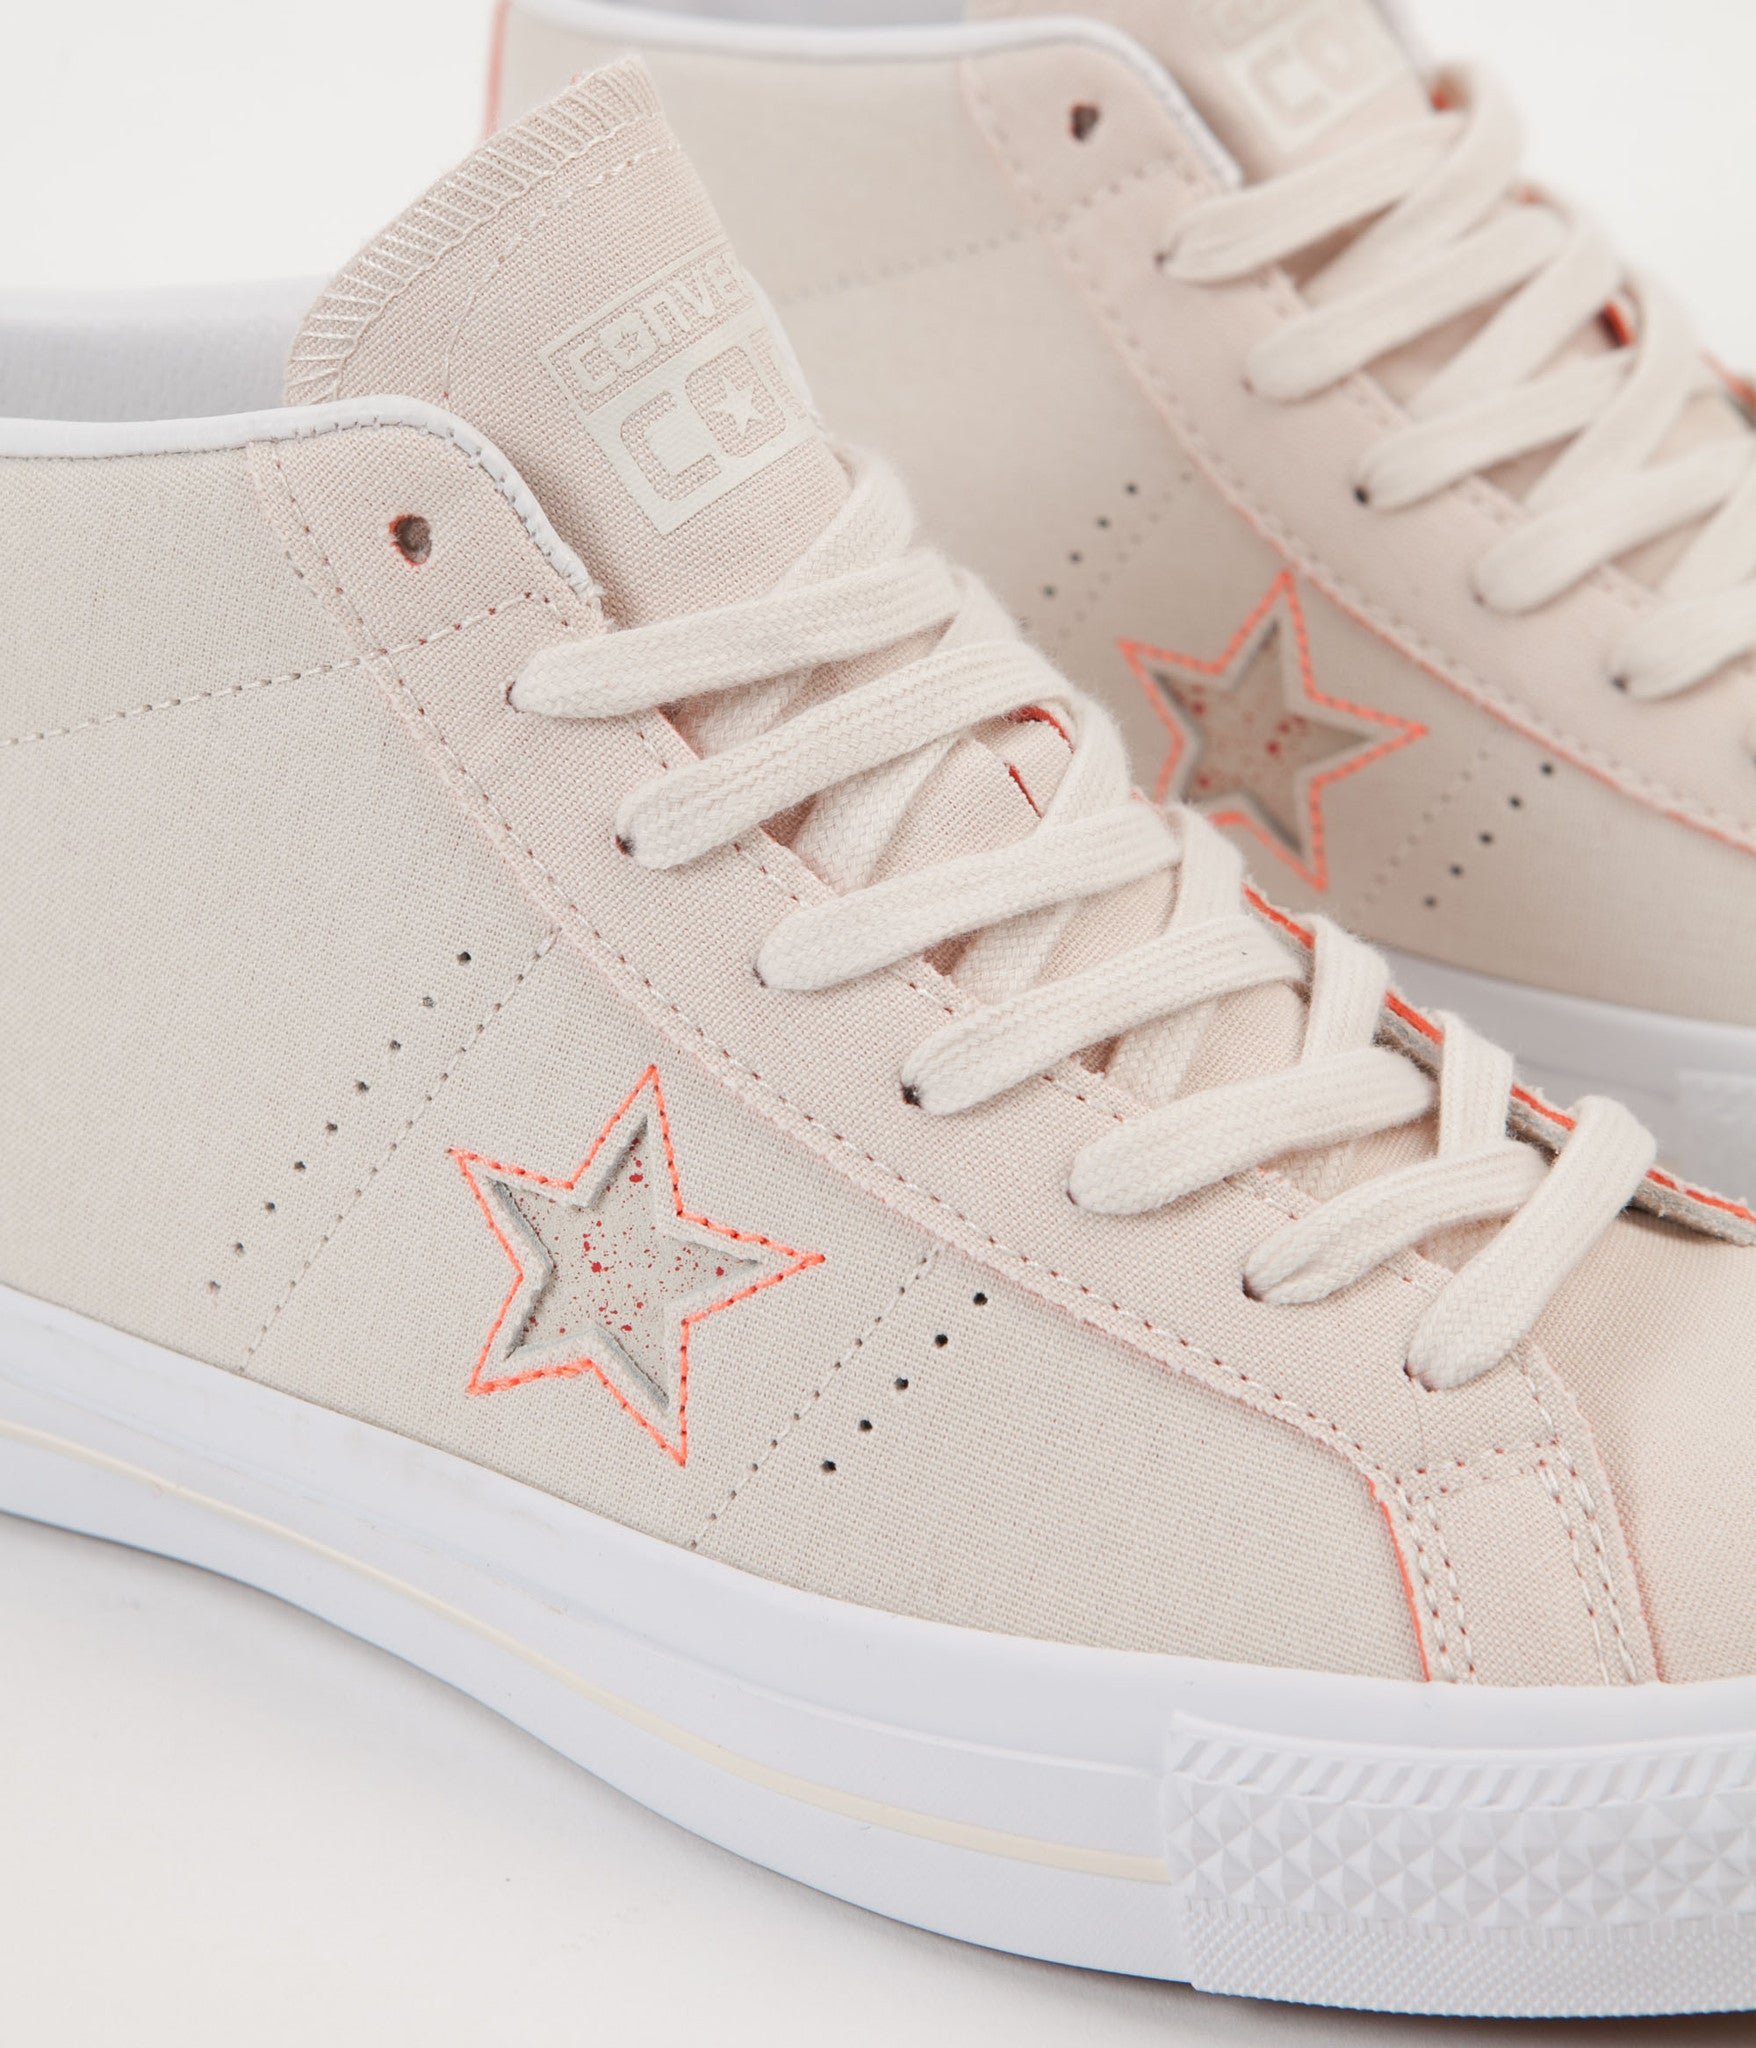 Converse One Star Pro Mid Shoes